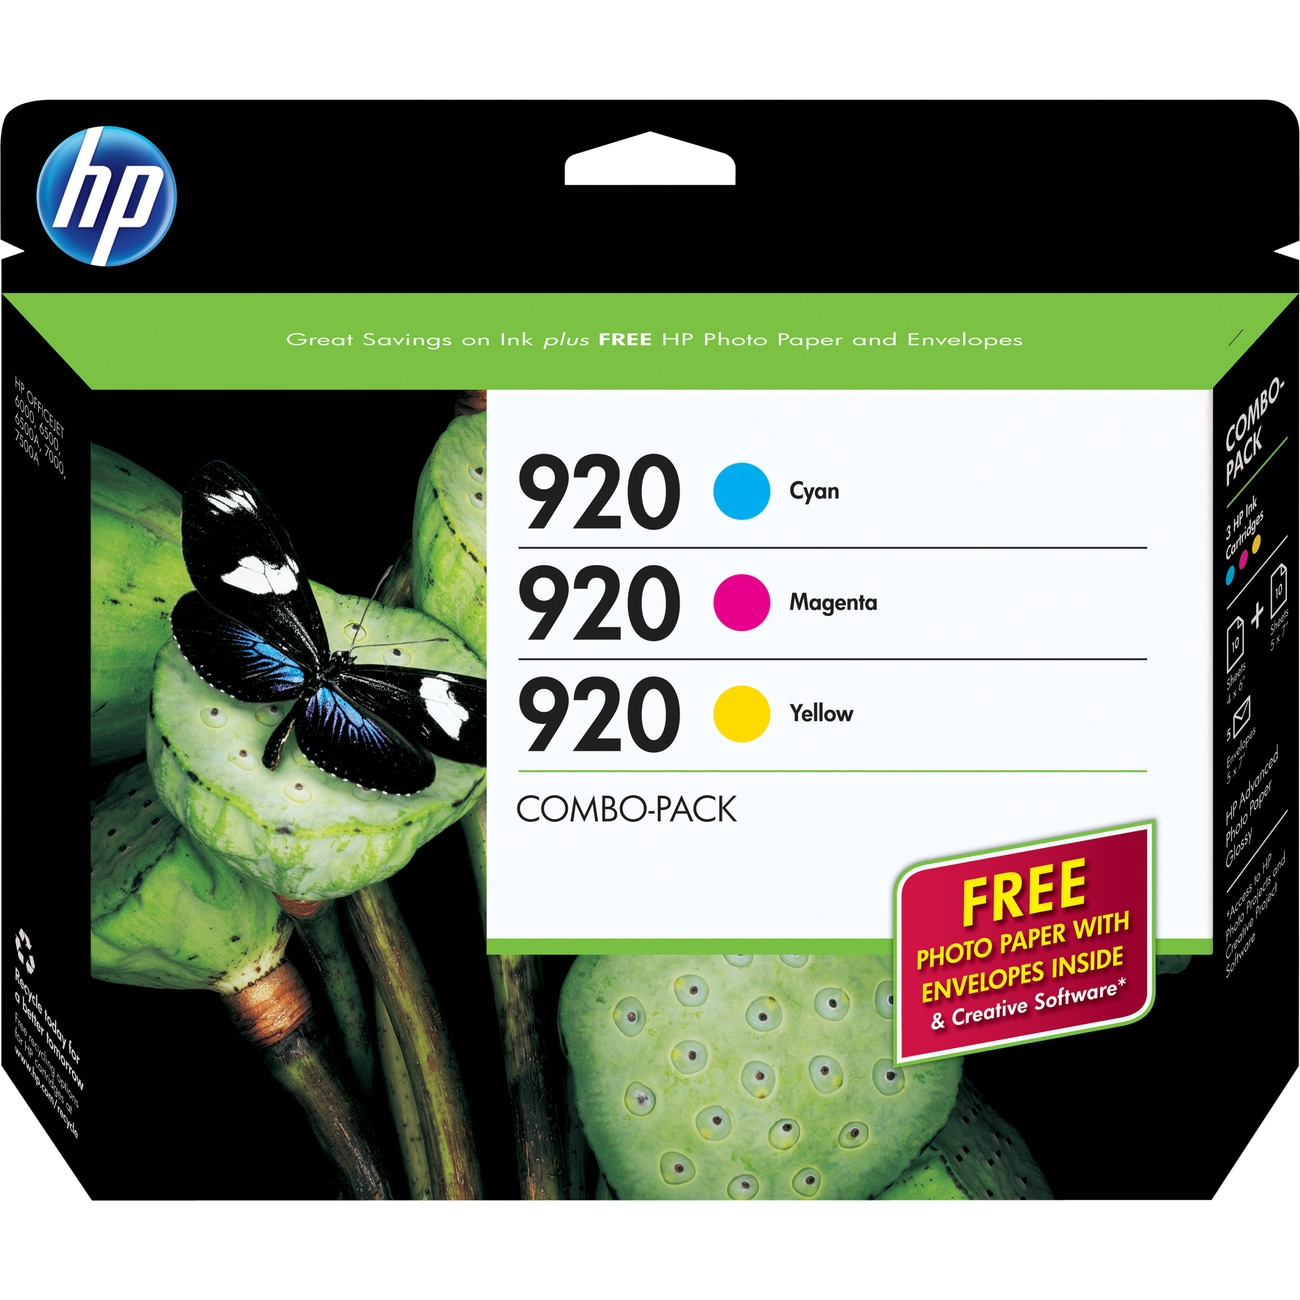 HP 920 Combo-pack Ink Cartridge - Cyan, Magenta, Yellow - Thumbnail 0